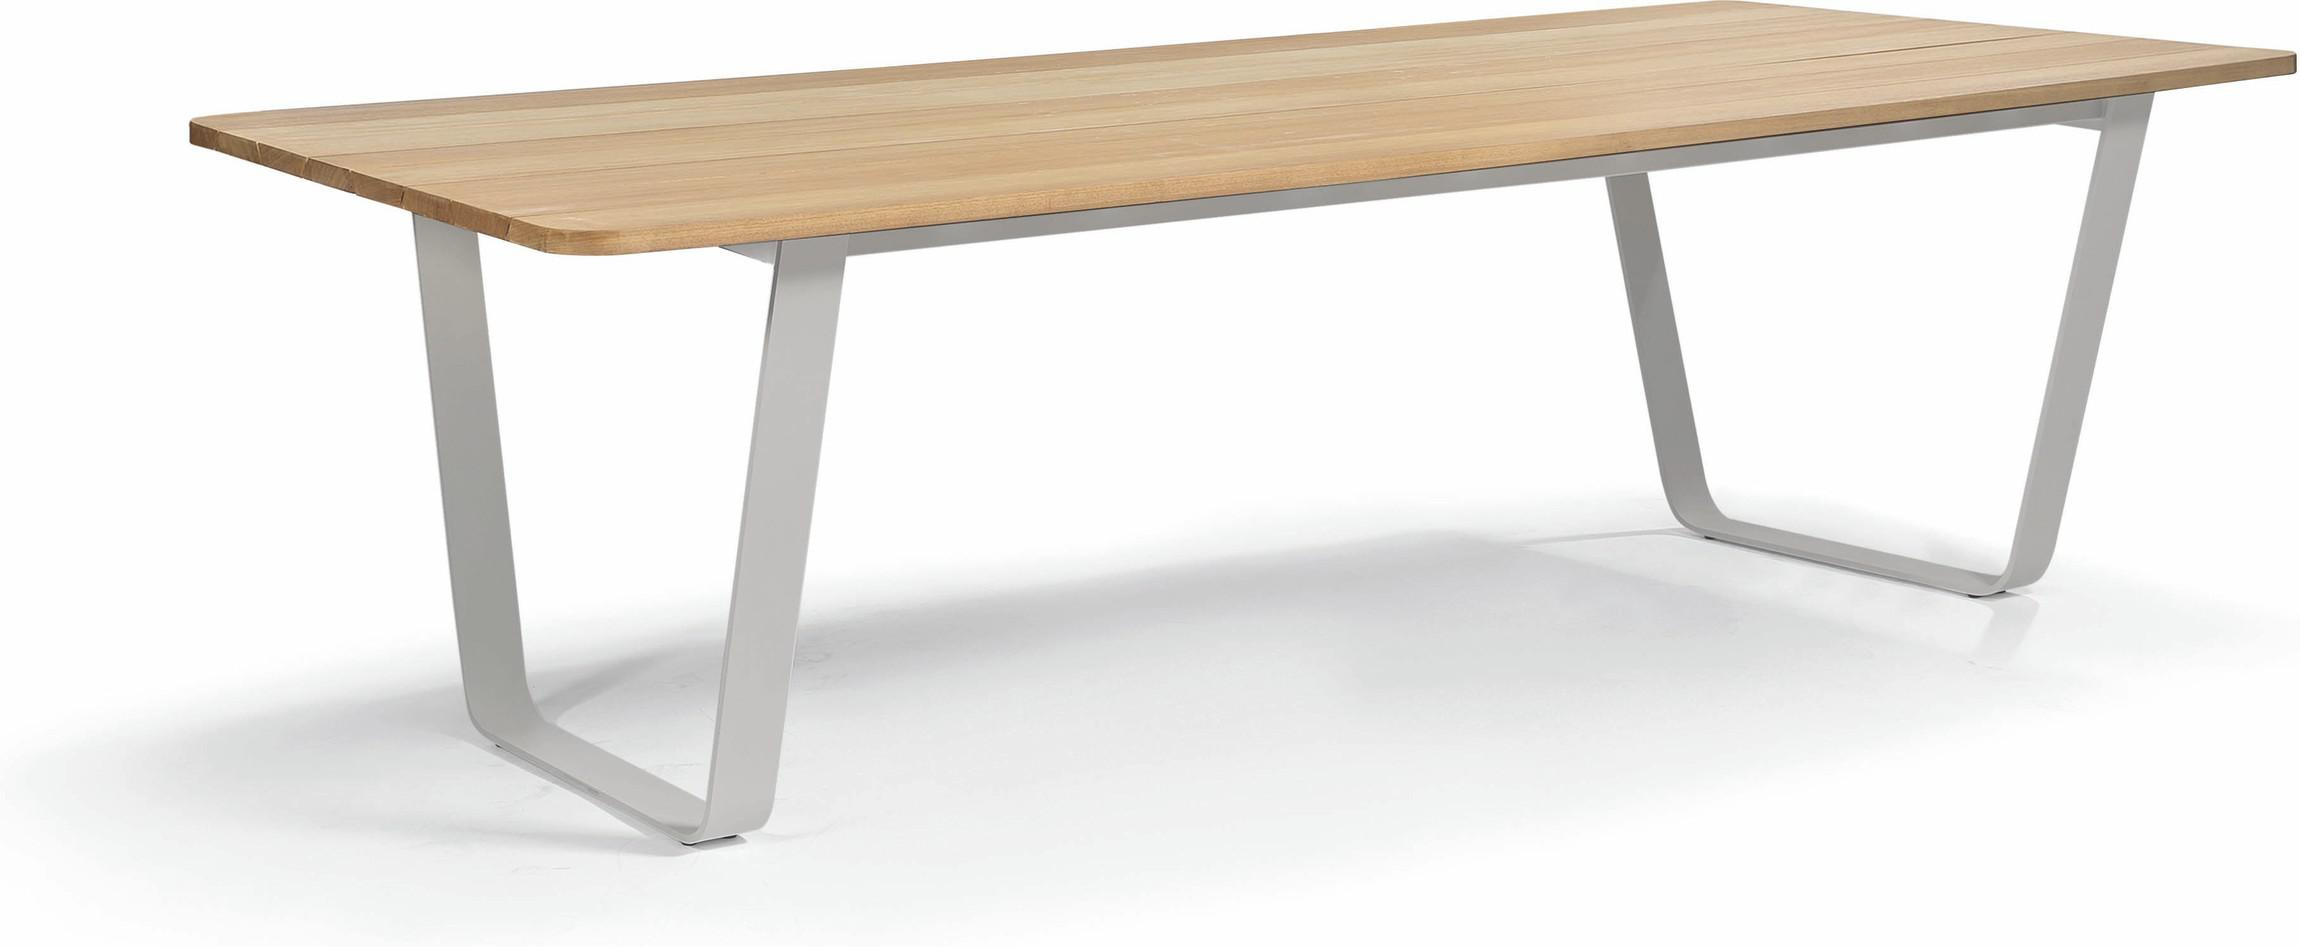 Air Dining table - flint - Iroko 264